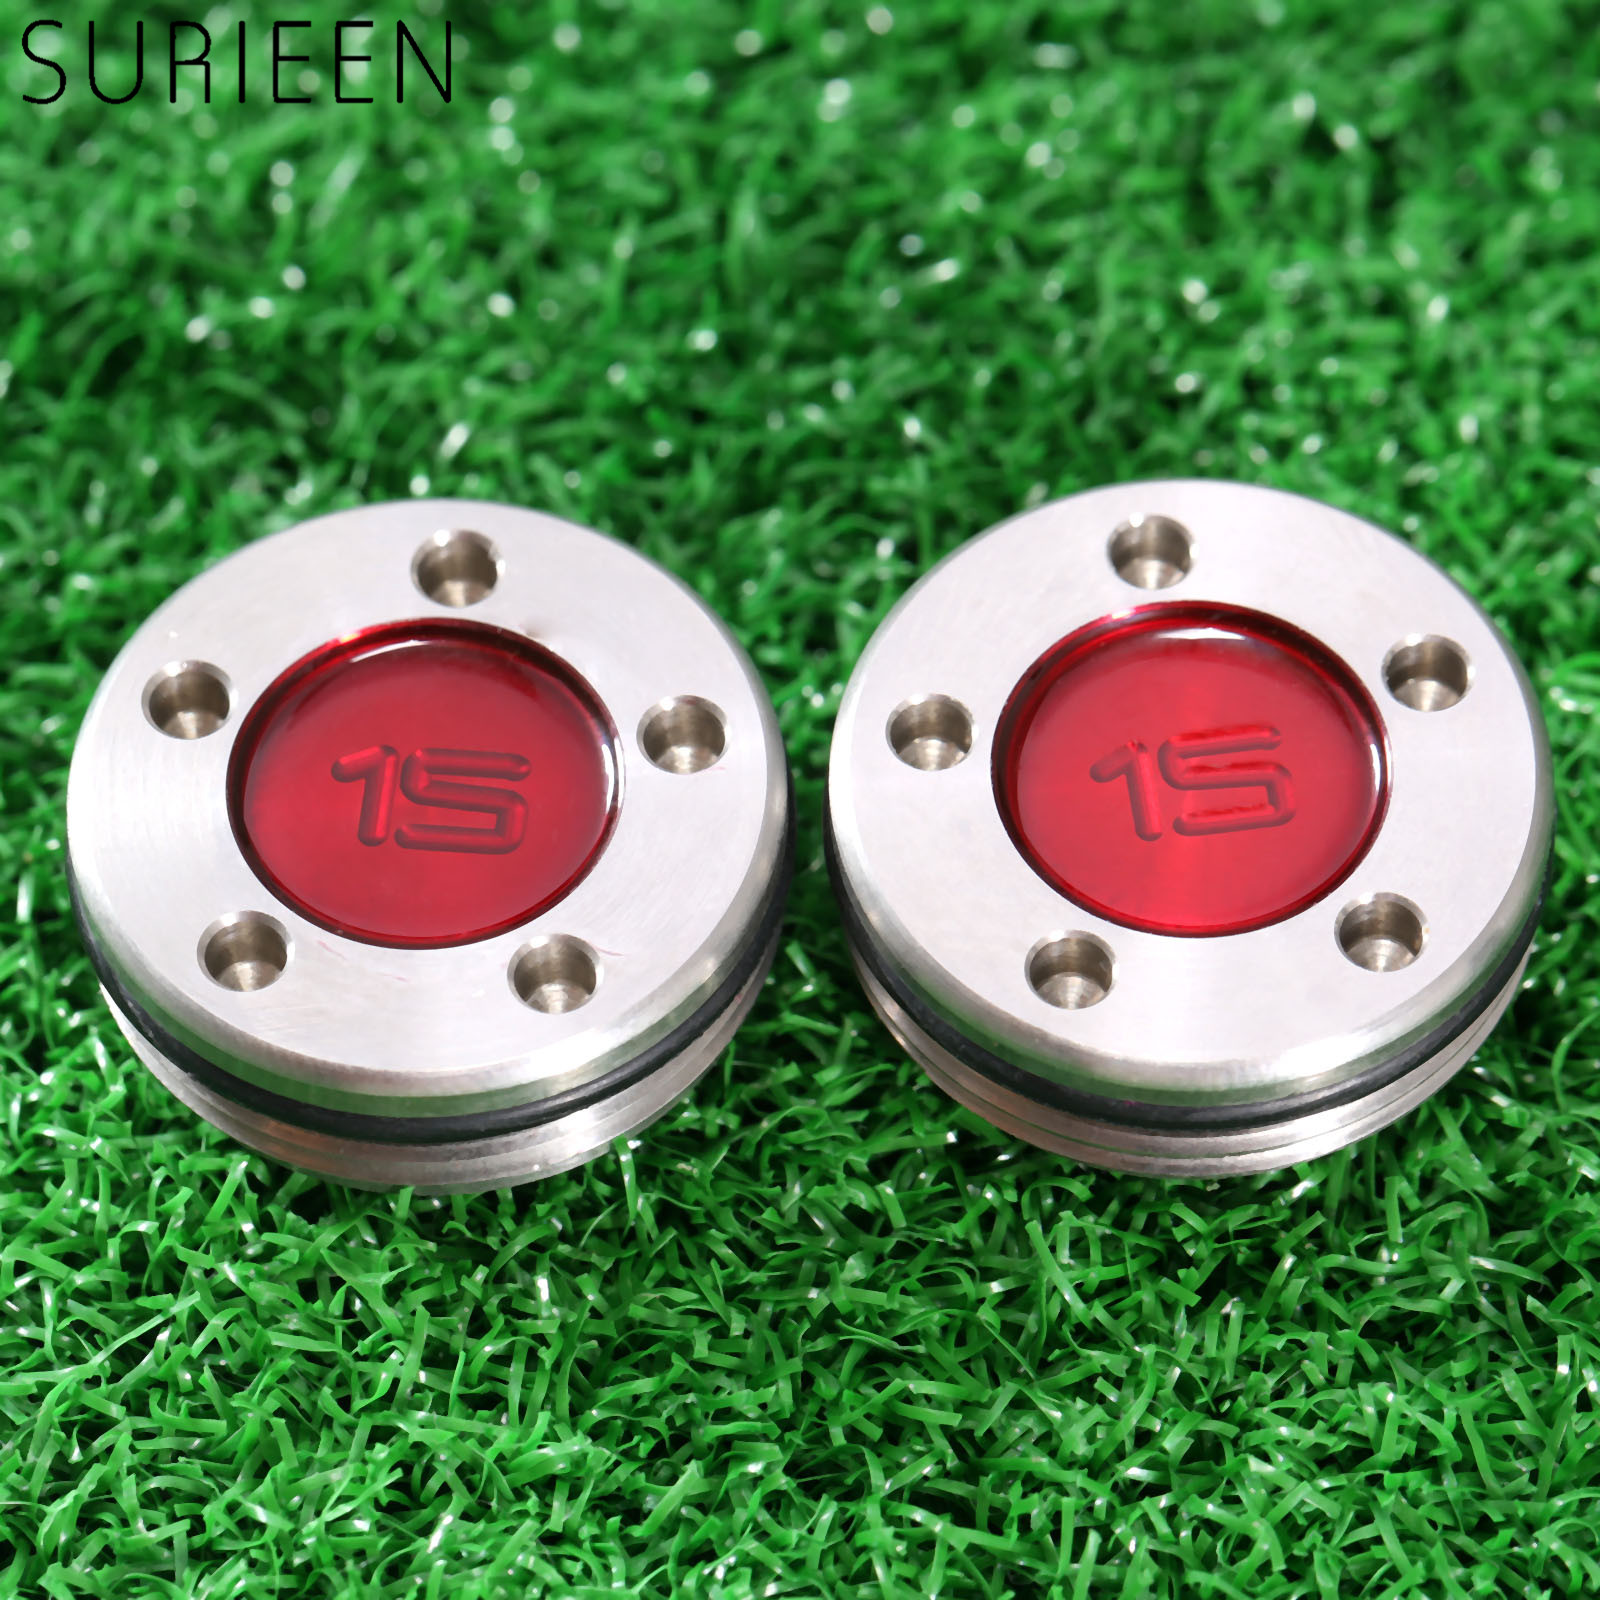 High Quality 2pcs/ Pair Red Stainless Steel Golf Putter Weight Screws Golf Weights 5g 10g 15g 20g New Arrivel Golf Training Aids